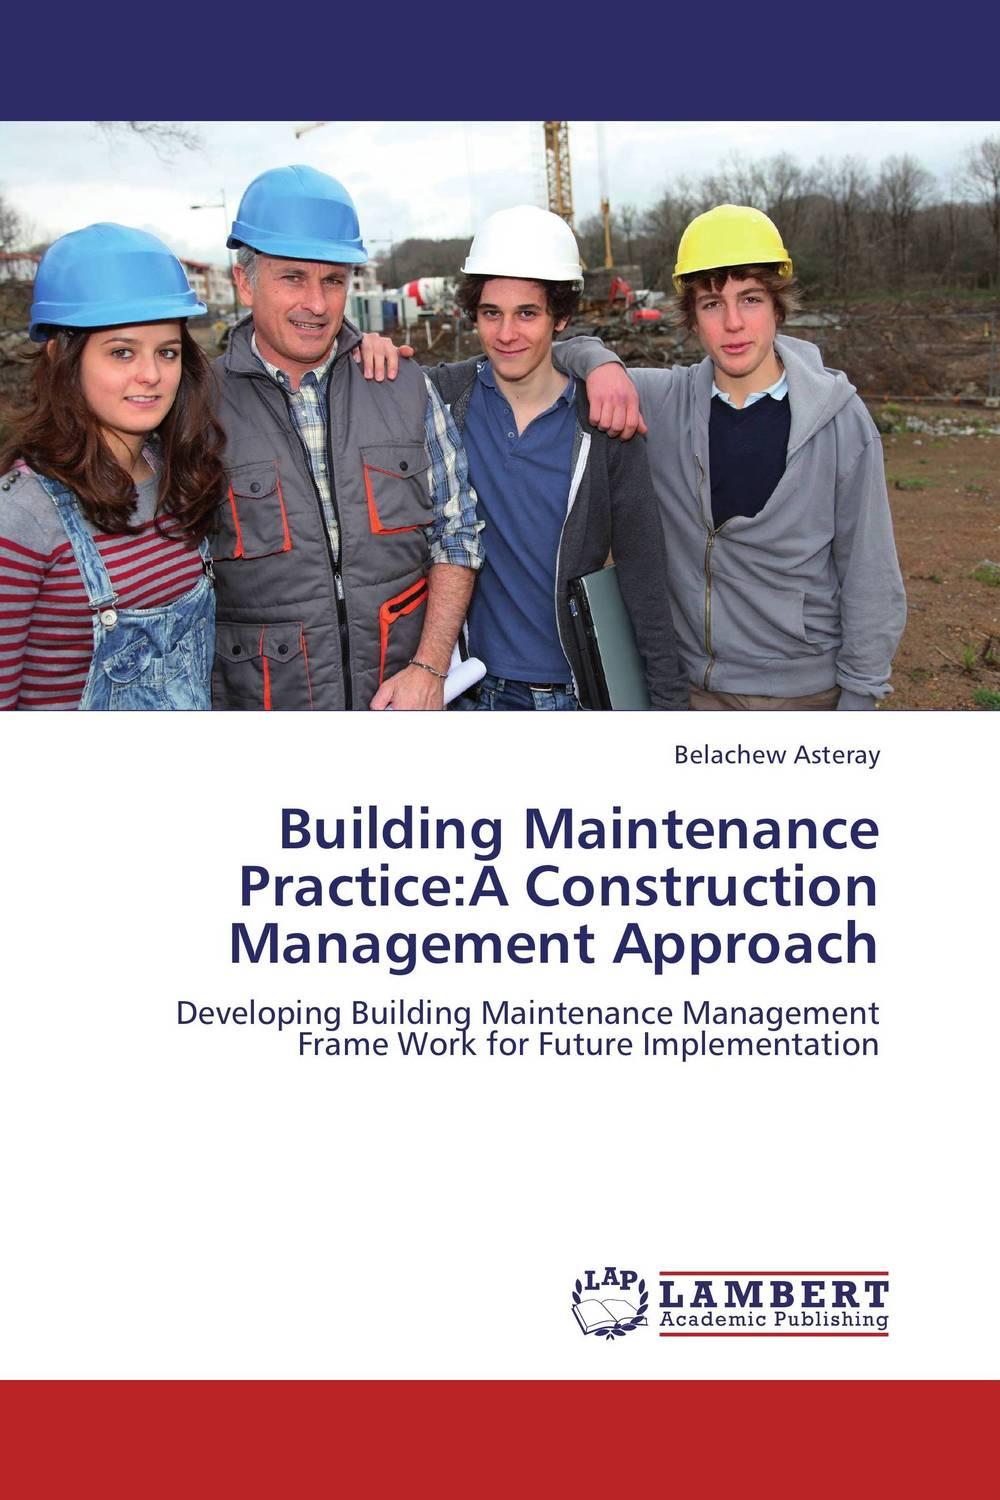 Building Maintenance Practice:A Construction Management Approach university management in practice and performance evaluation